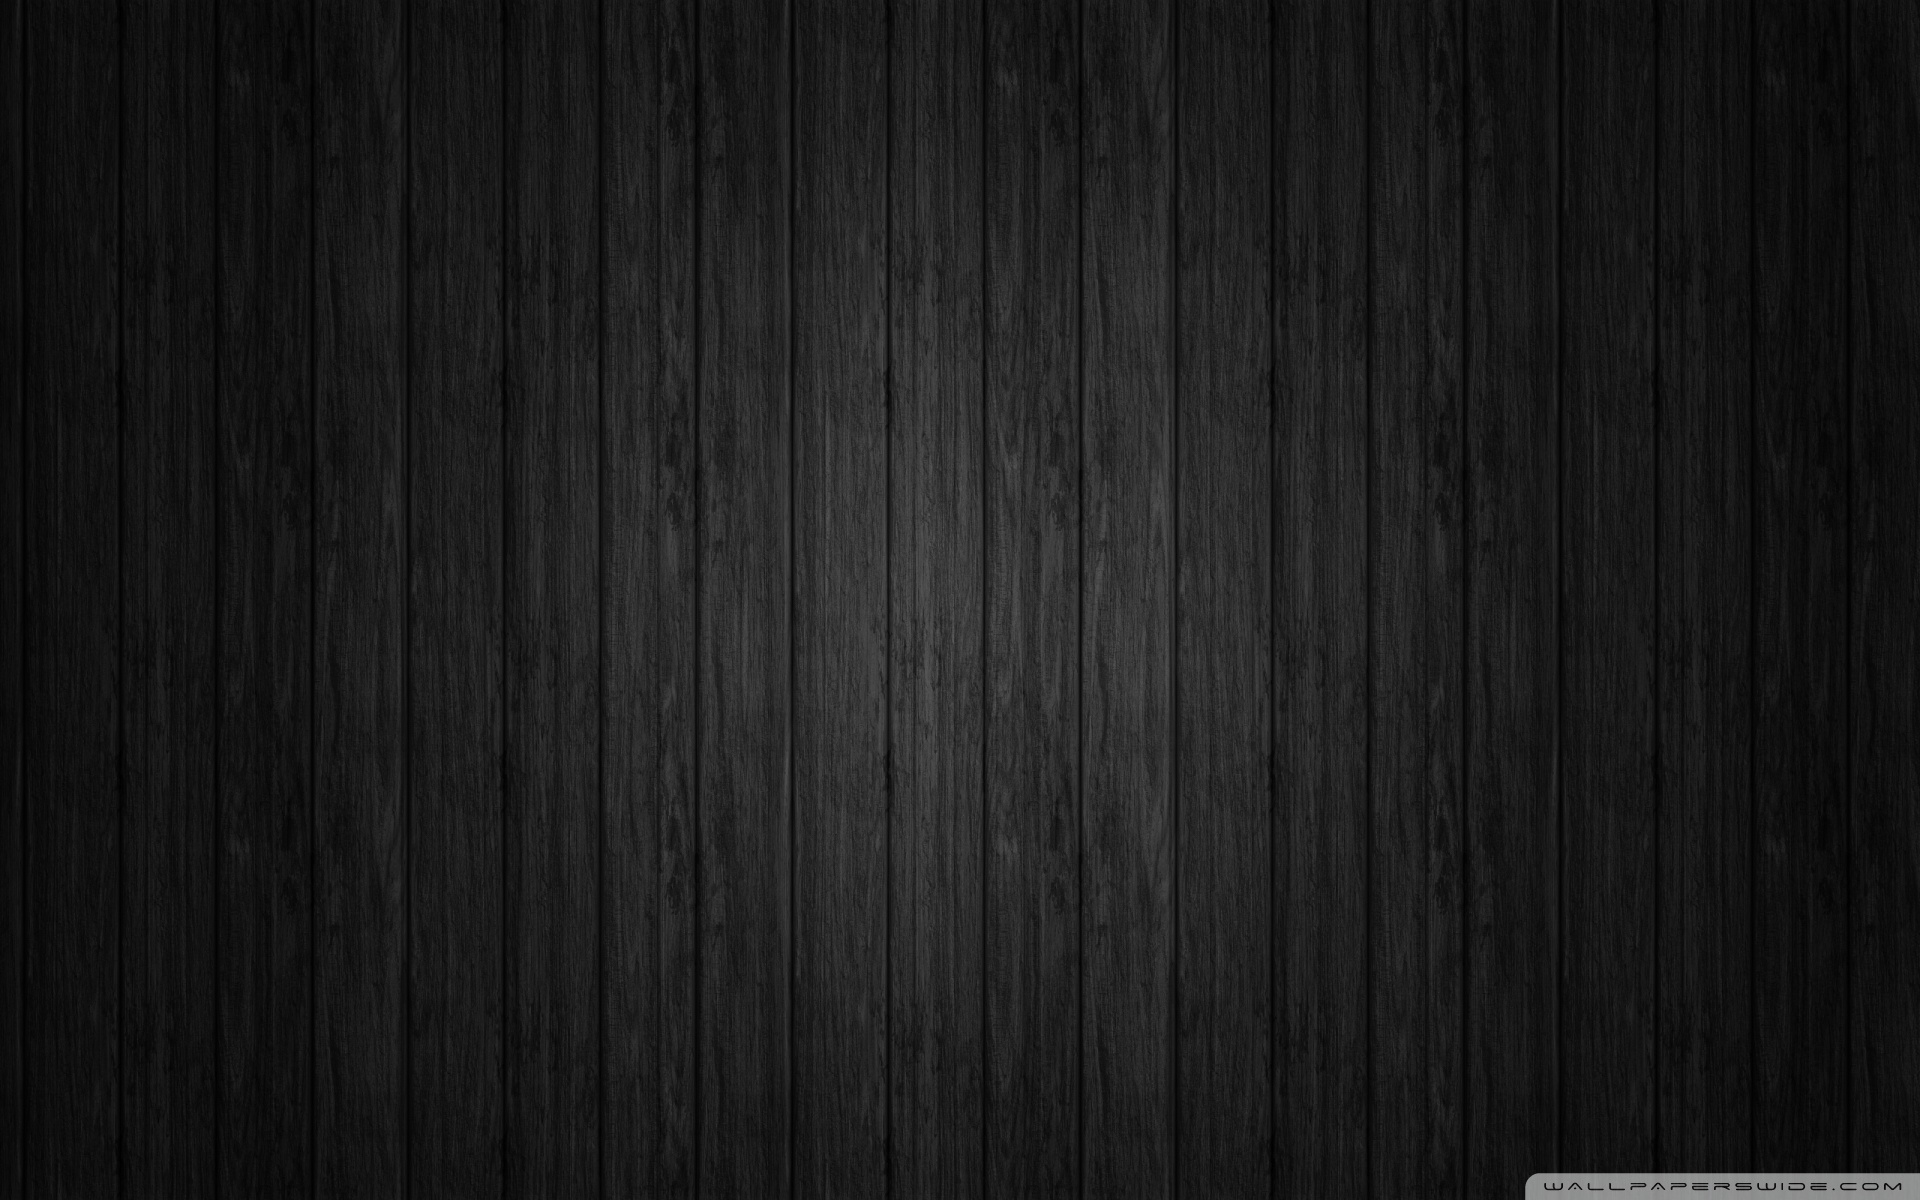 Dark Wood Wallpapers and Background Images - stmed.net